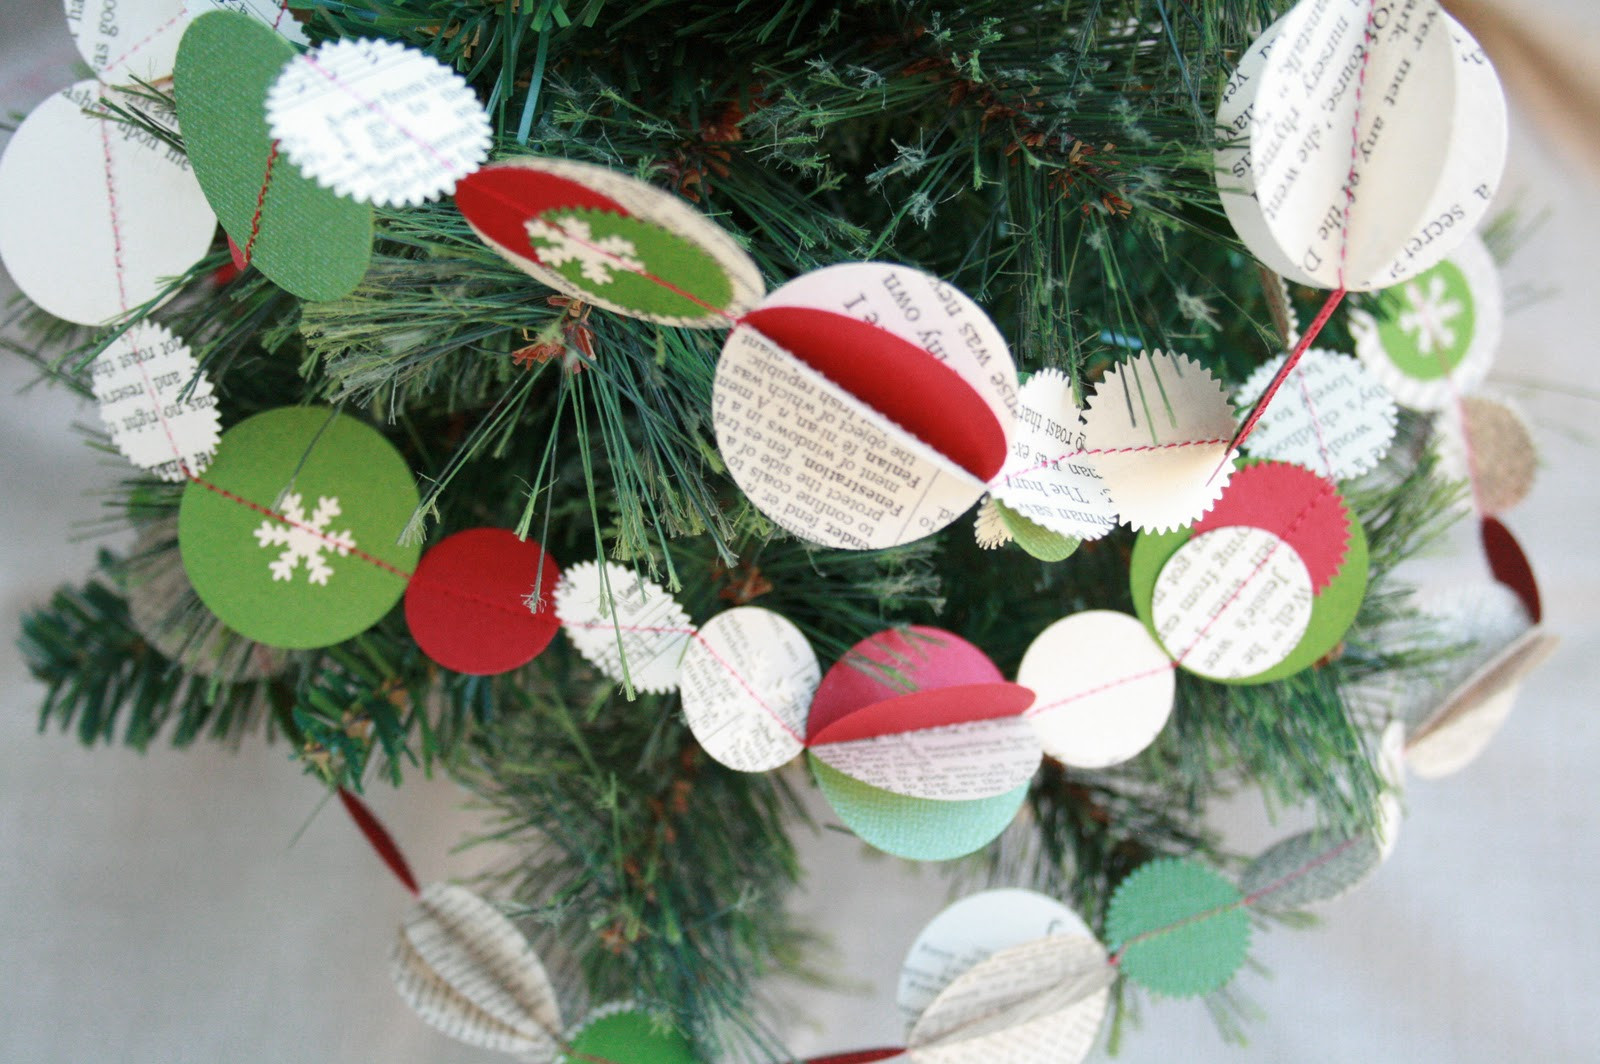 Best ideas about DIY Christmas Garlands . Save or Pin The Creative Place DIY Festive Holiday Garland Now.